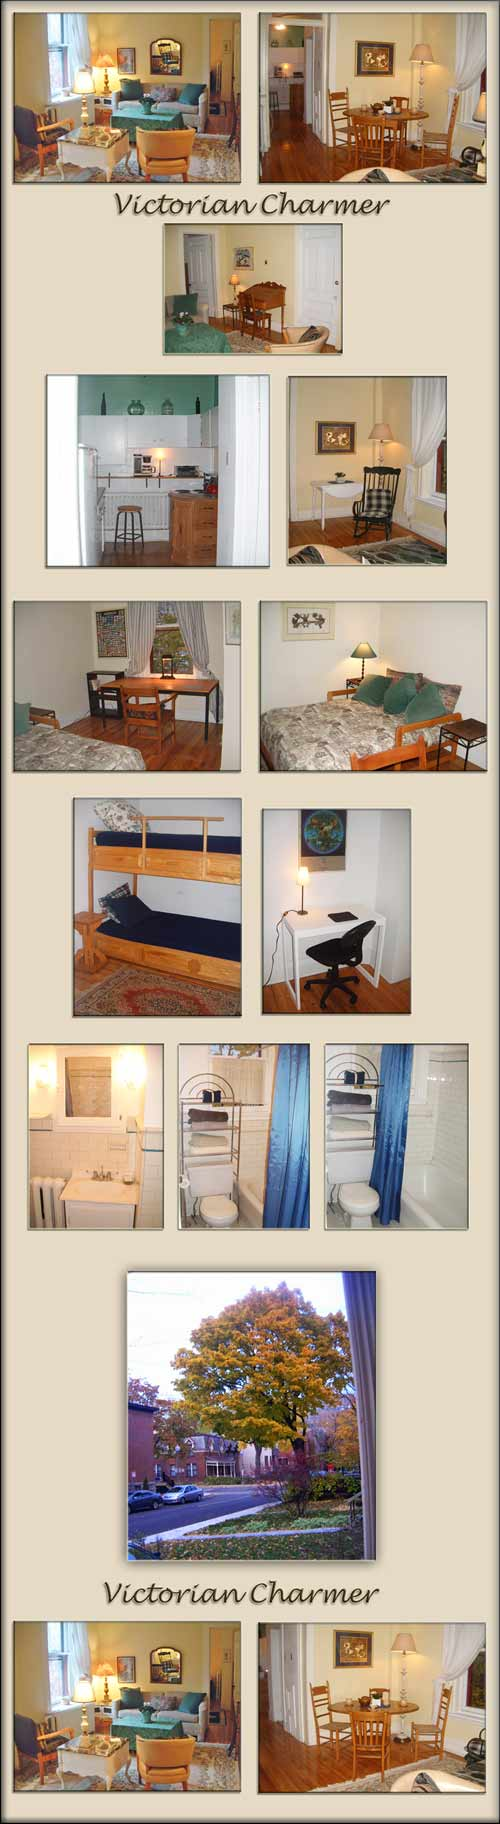 Montreal apartment and condo rentals montreal apartment for Cabin rentals in montreal canada